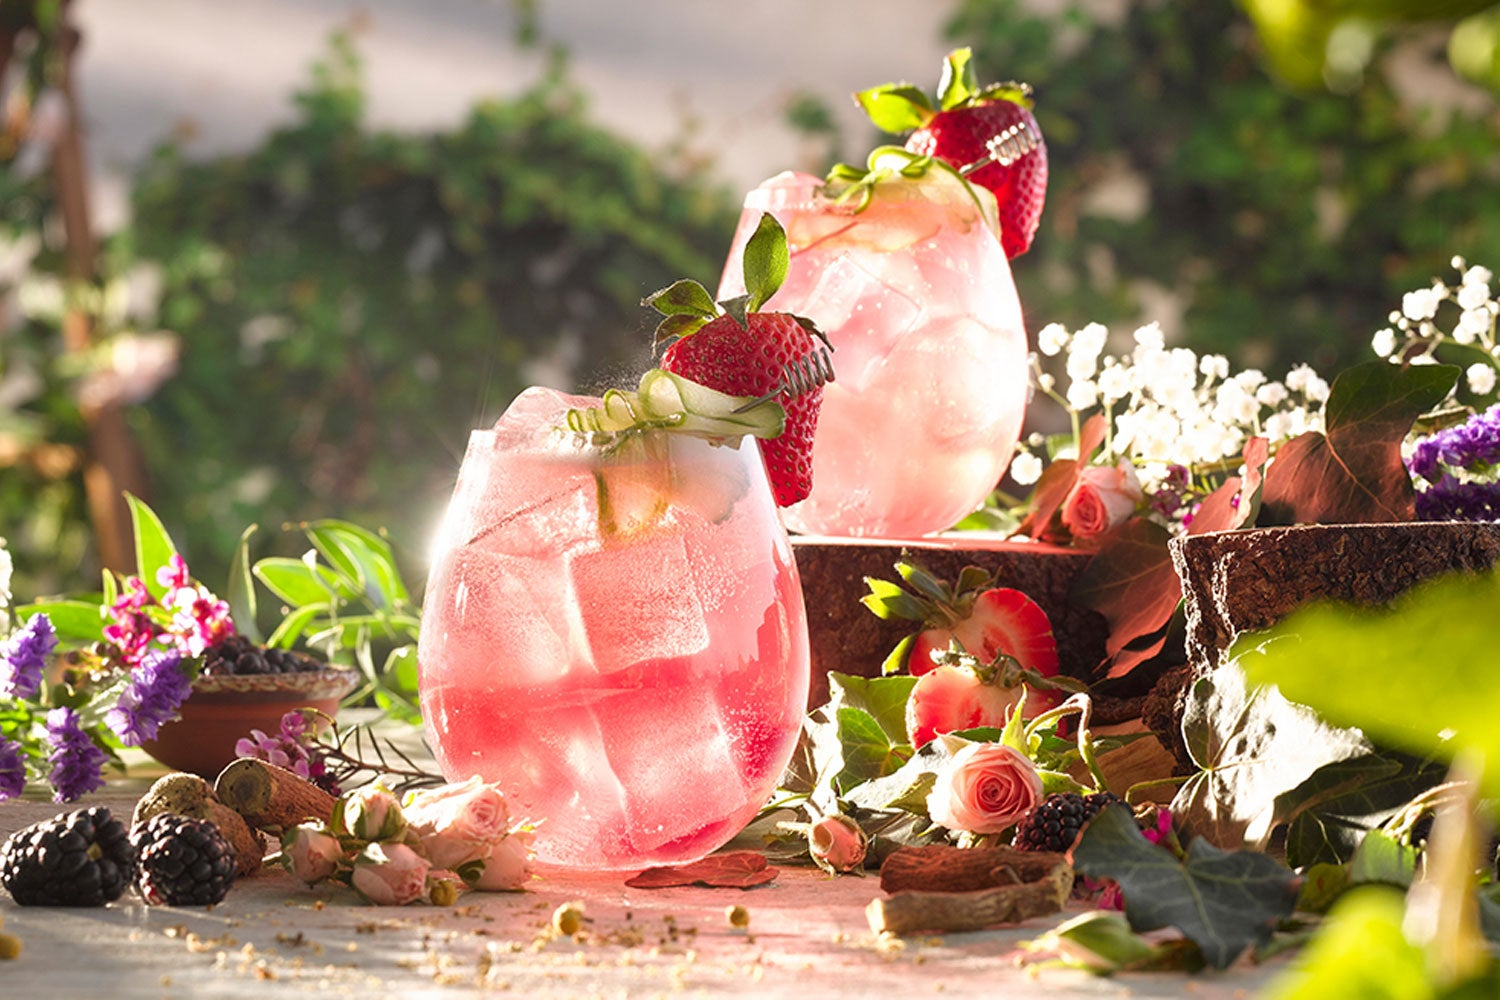 Celebrate #WorldGinDay with Craft Gin Club's Fairy Juice Cocktail!